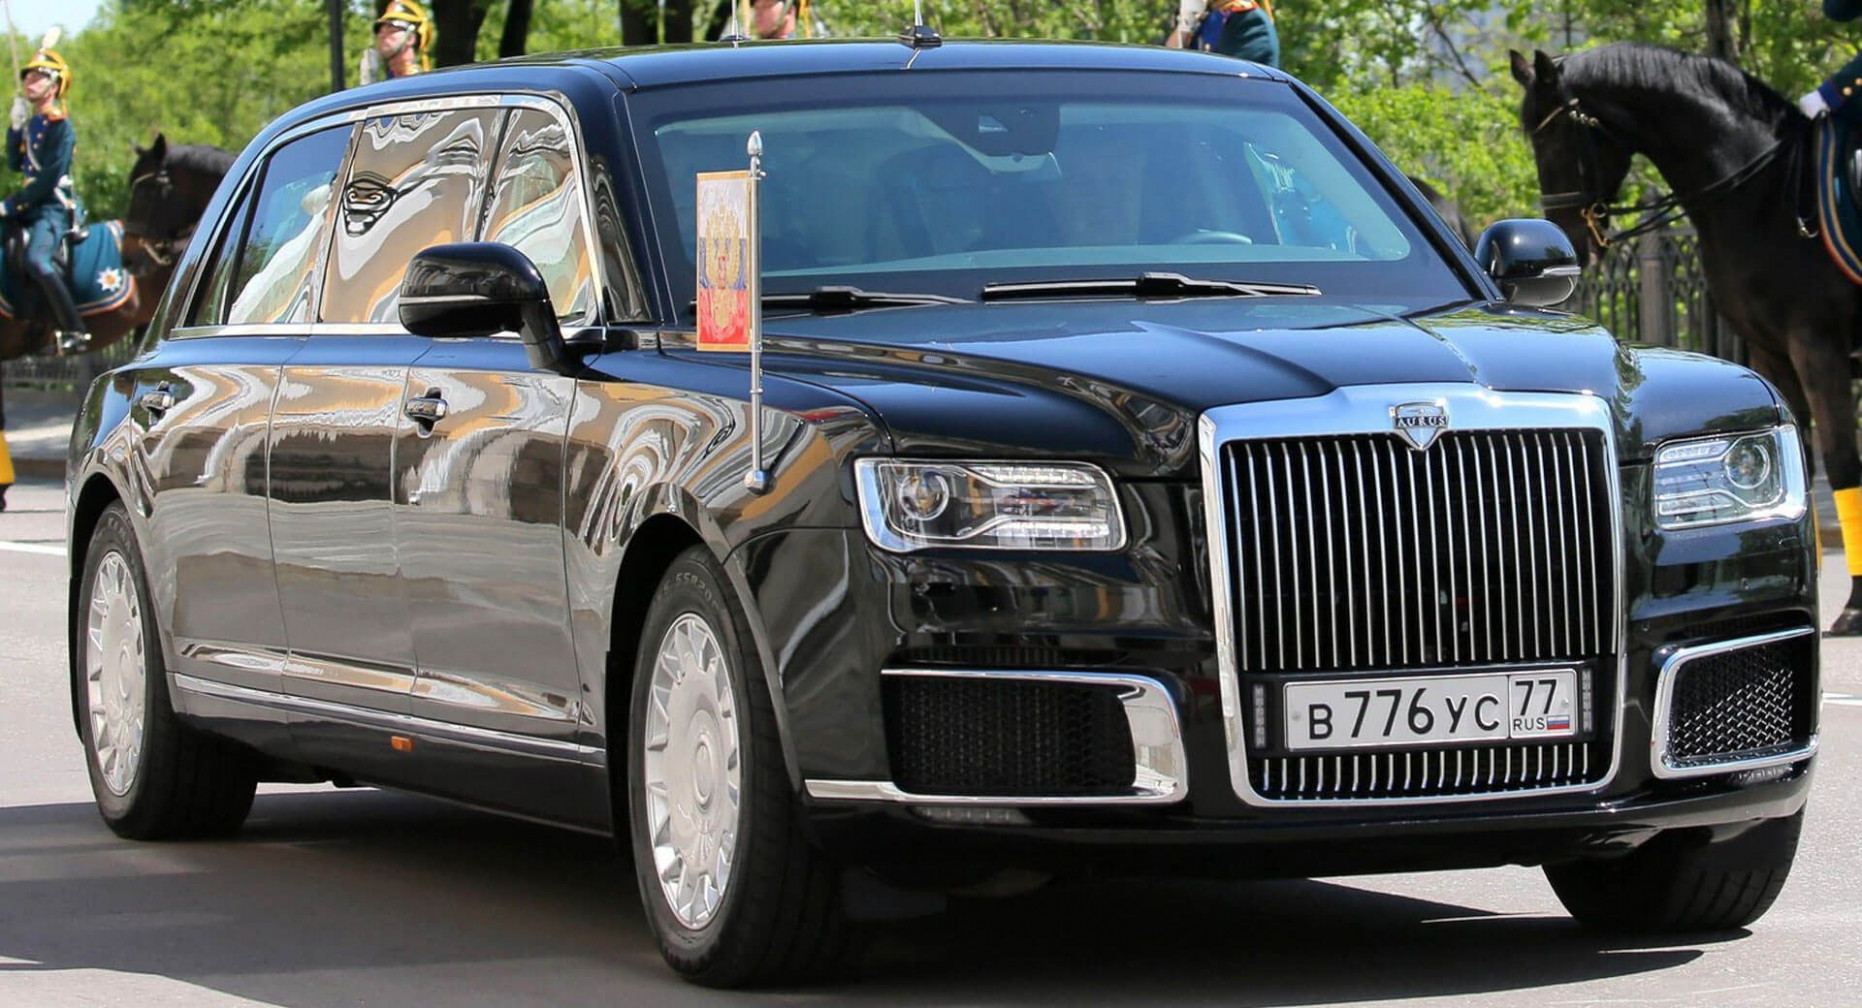 Putin's New Limo Unveiled At His Inauguration Ceremony | Wladimir ...